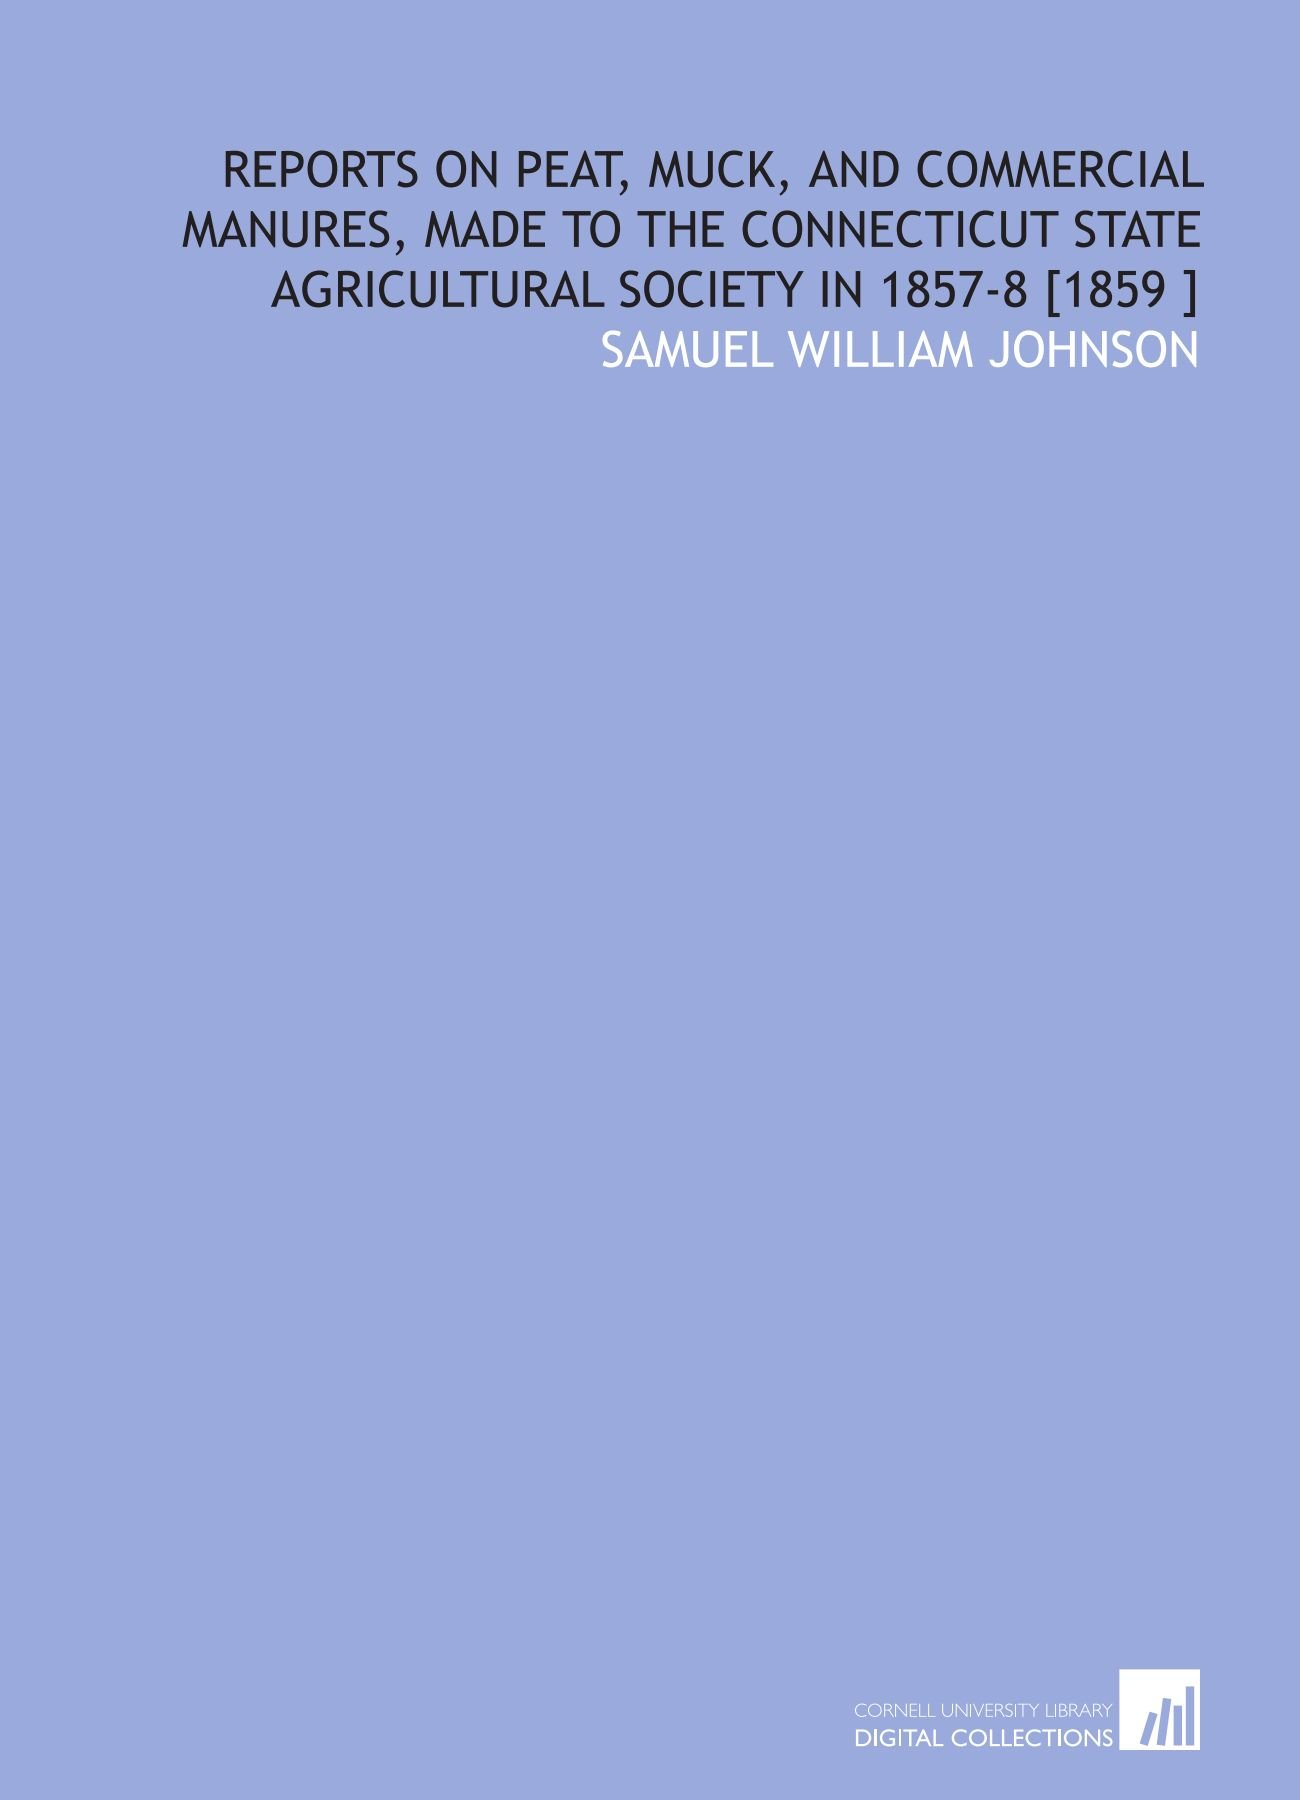 Download Reports on Peat, Muck, and Commercial Manures, Made to the Connecticut State Agricultural Society in 1857-8 [1859 ] pdf